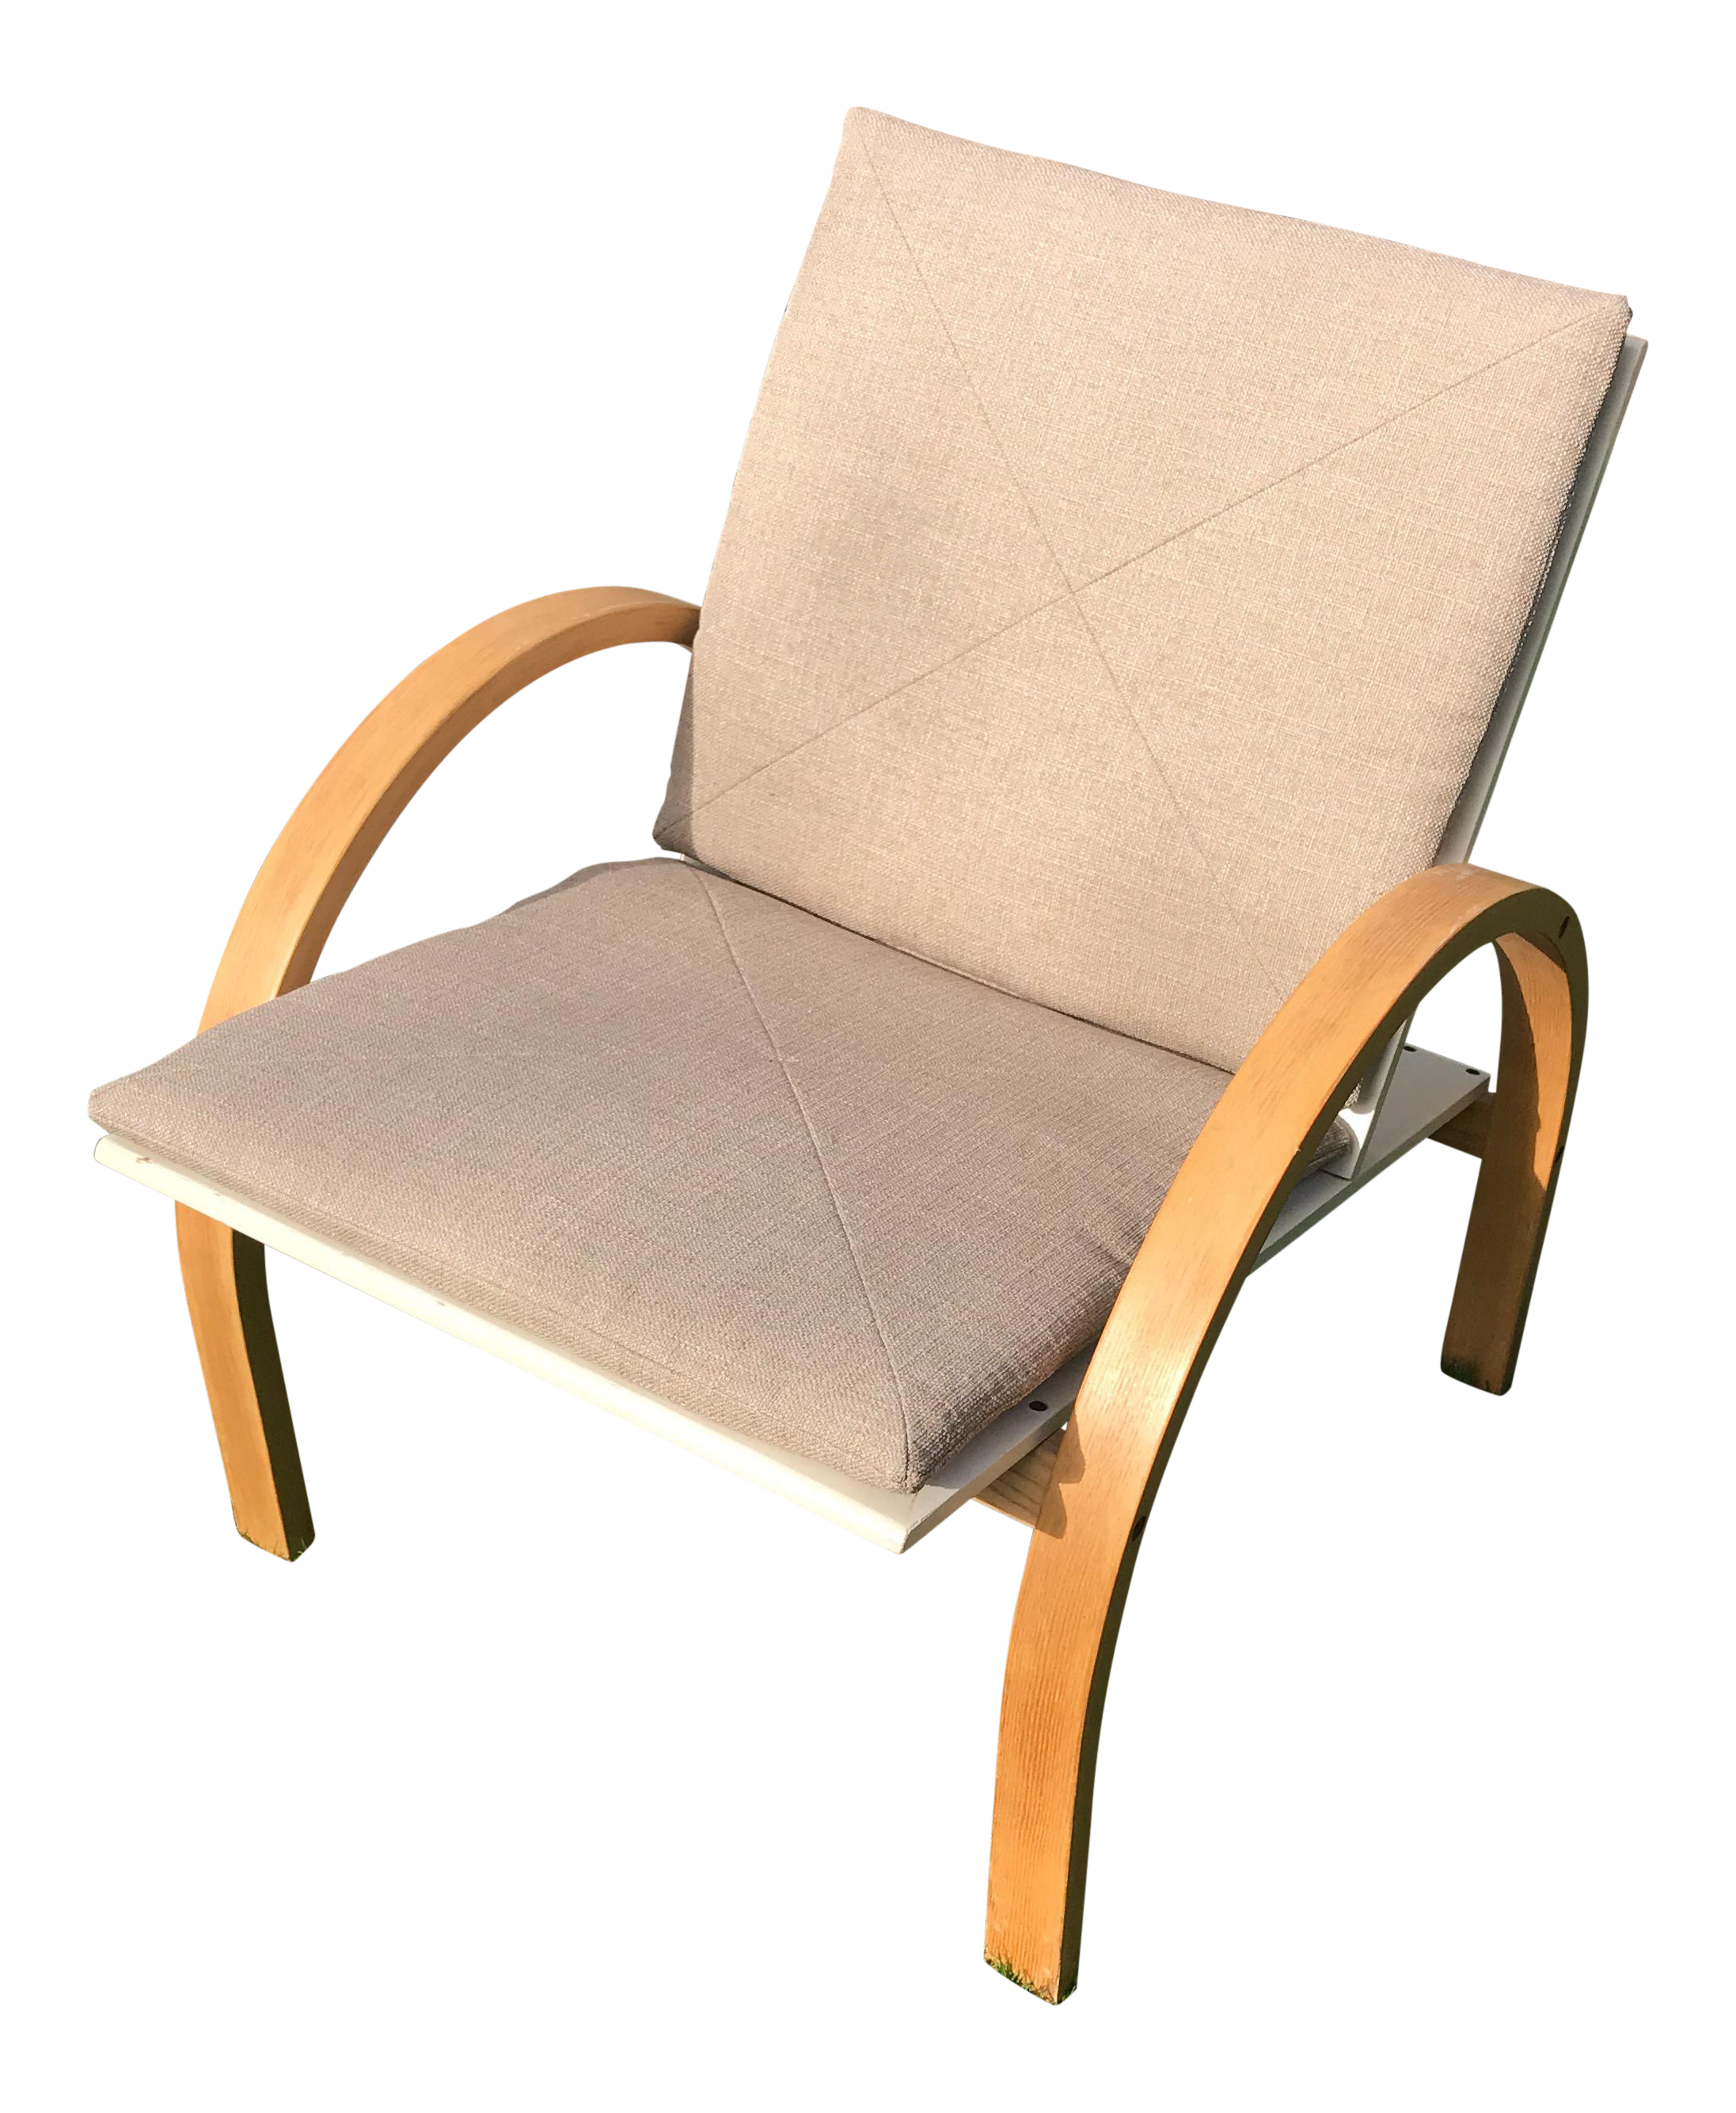 Ole Schjøll for Alta Form Arch Lounge Chair Chair, Small